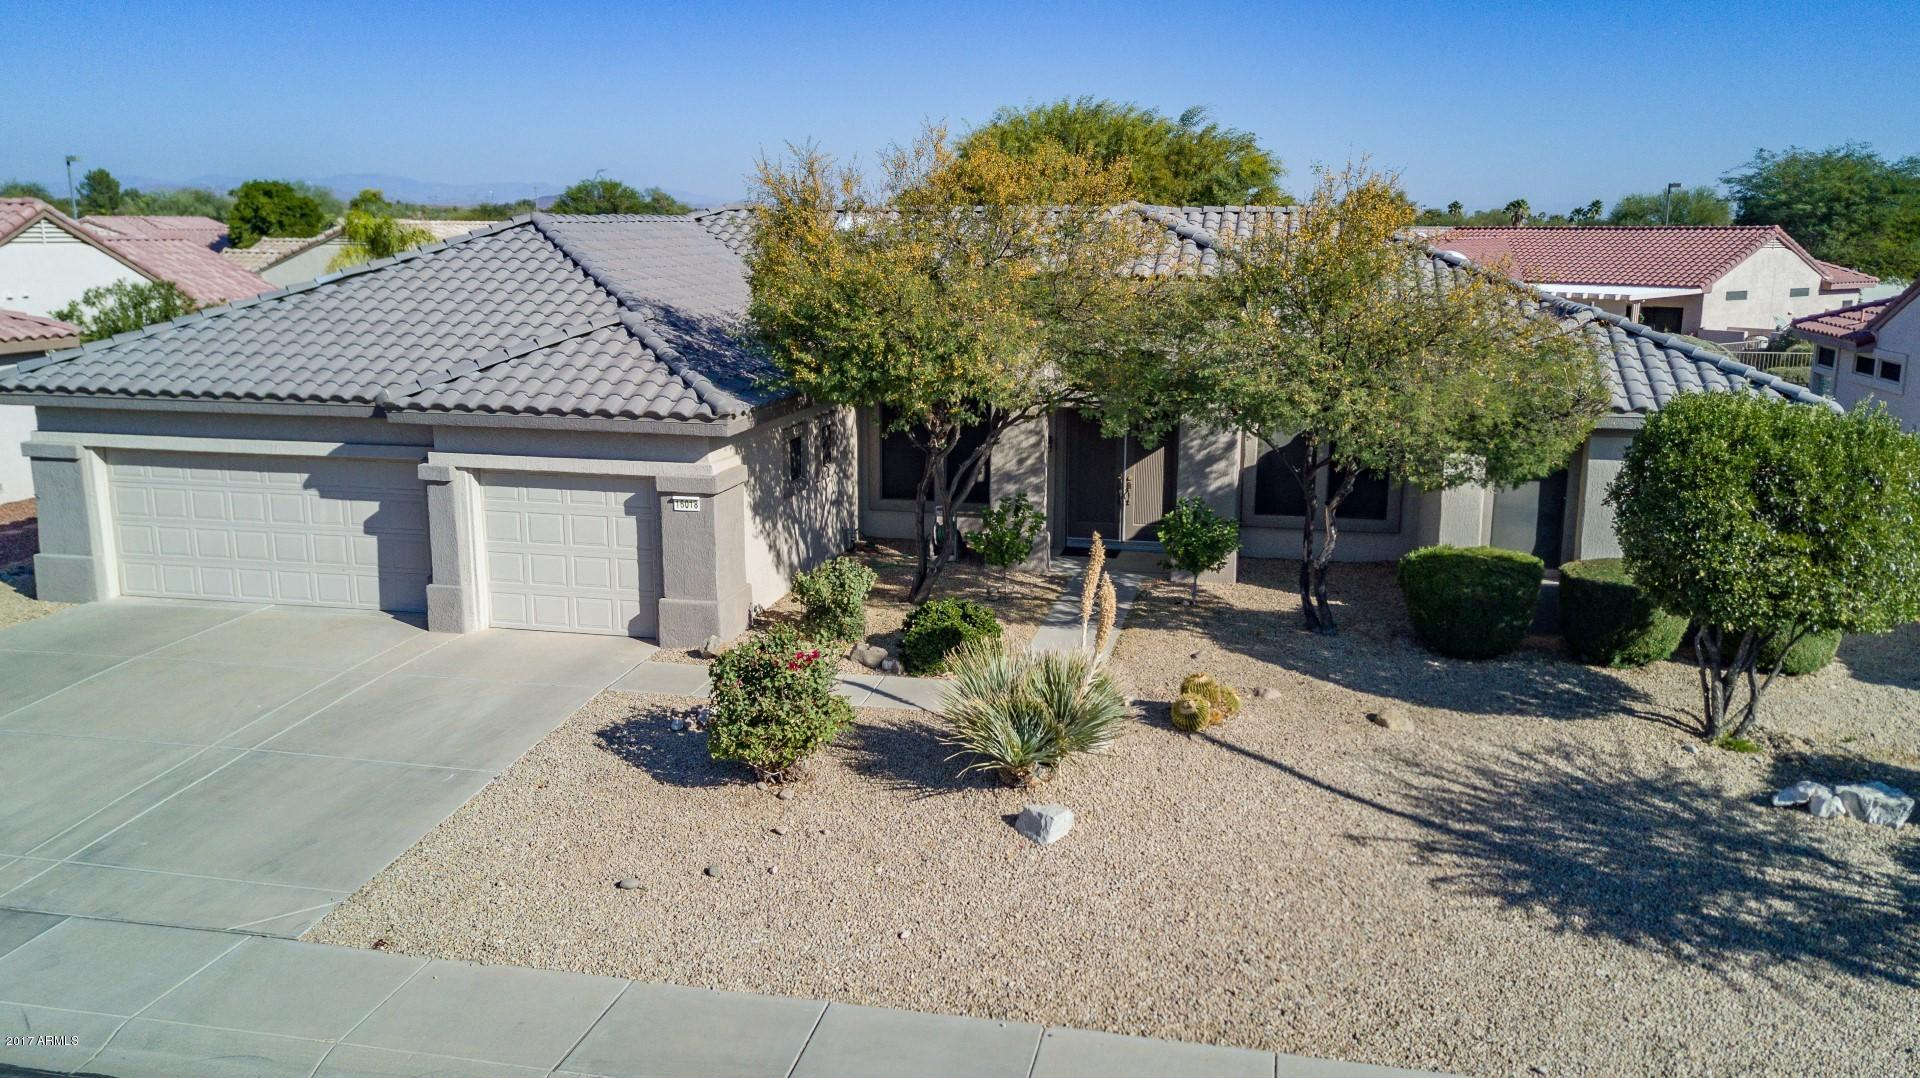 16018 W STARLIGHT DRIVE, SURPRISE, AZ 85374